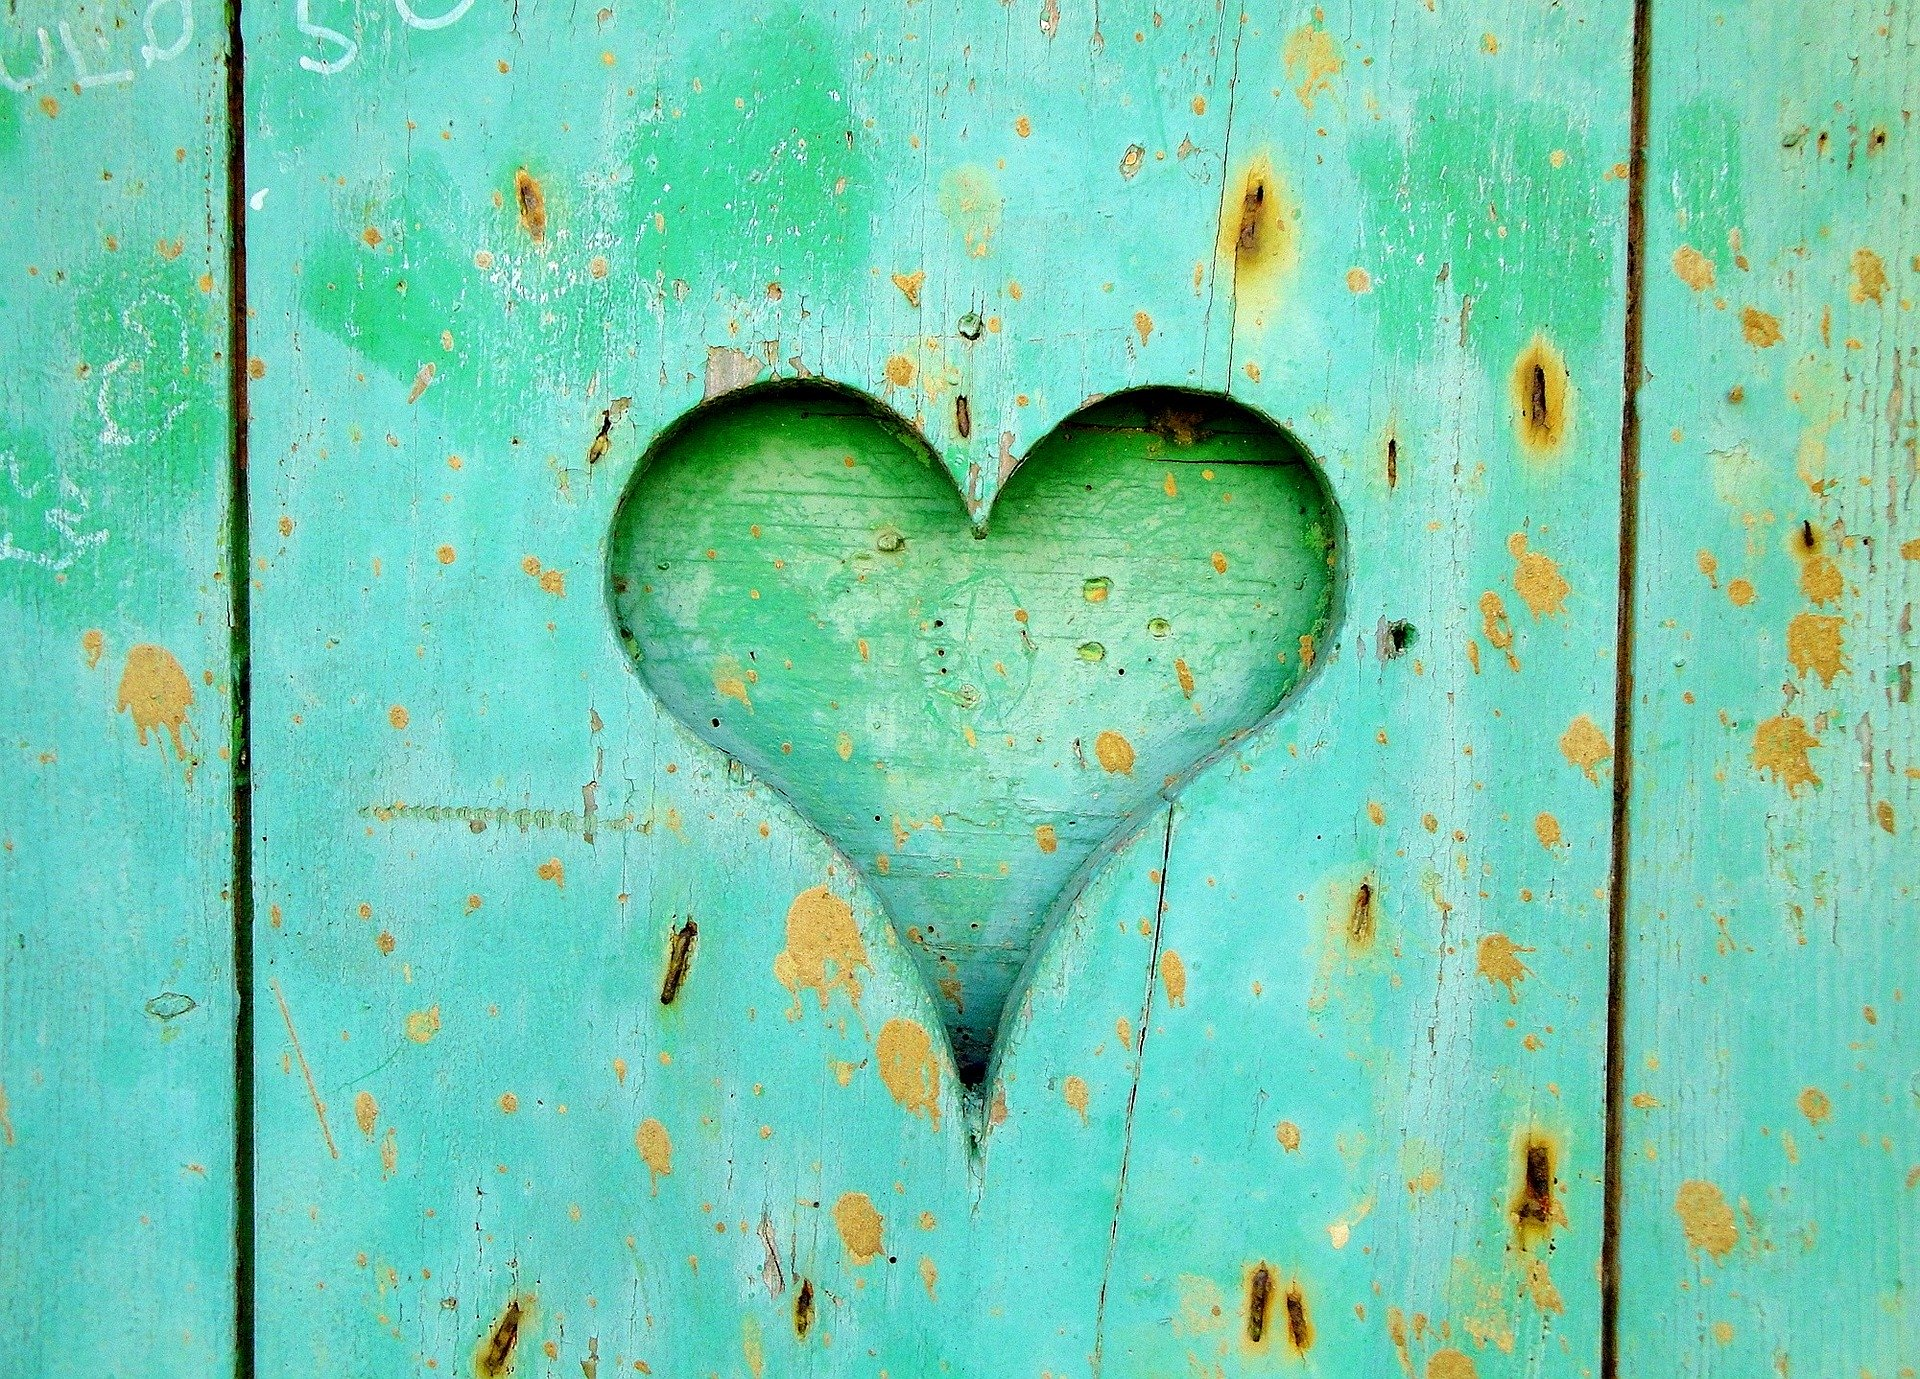 Green wooden board with a heart cut out